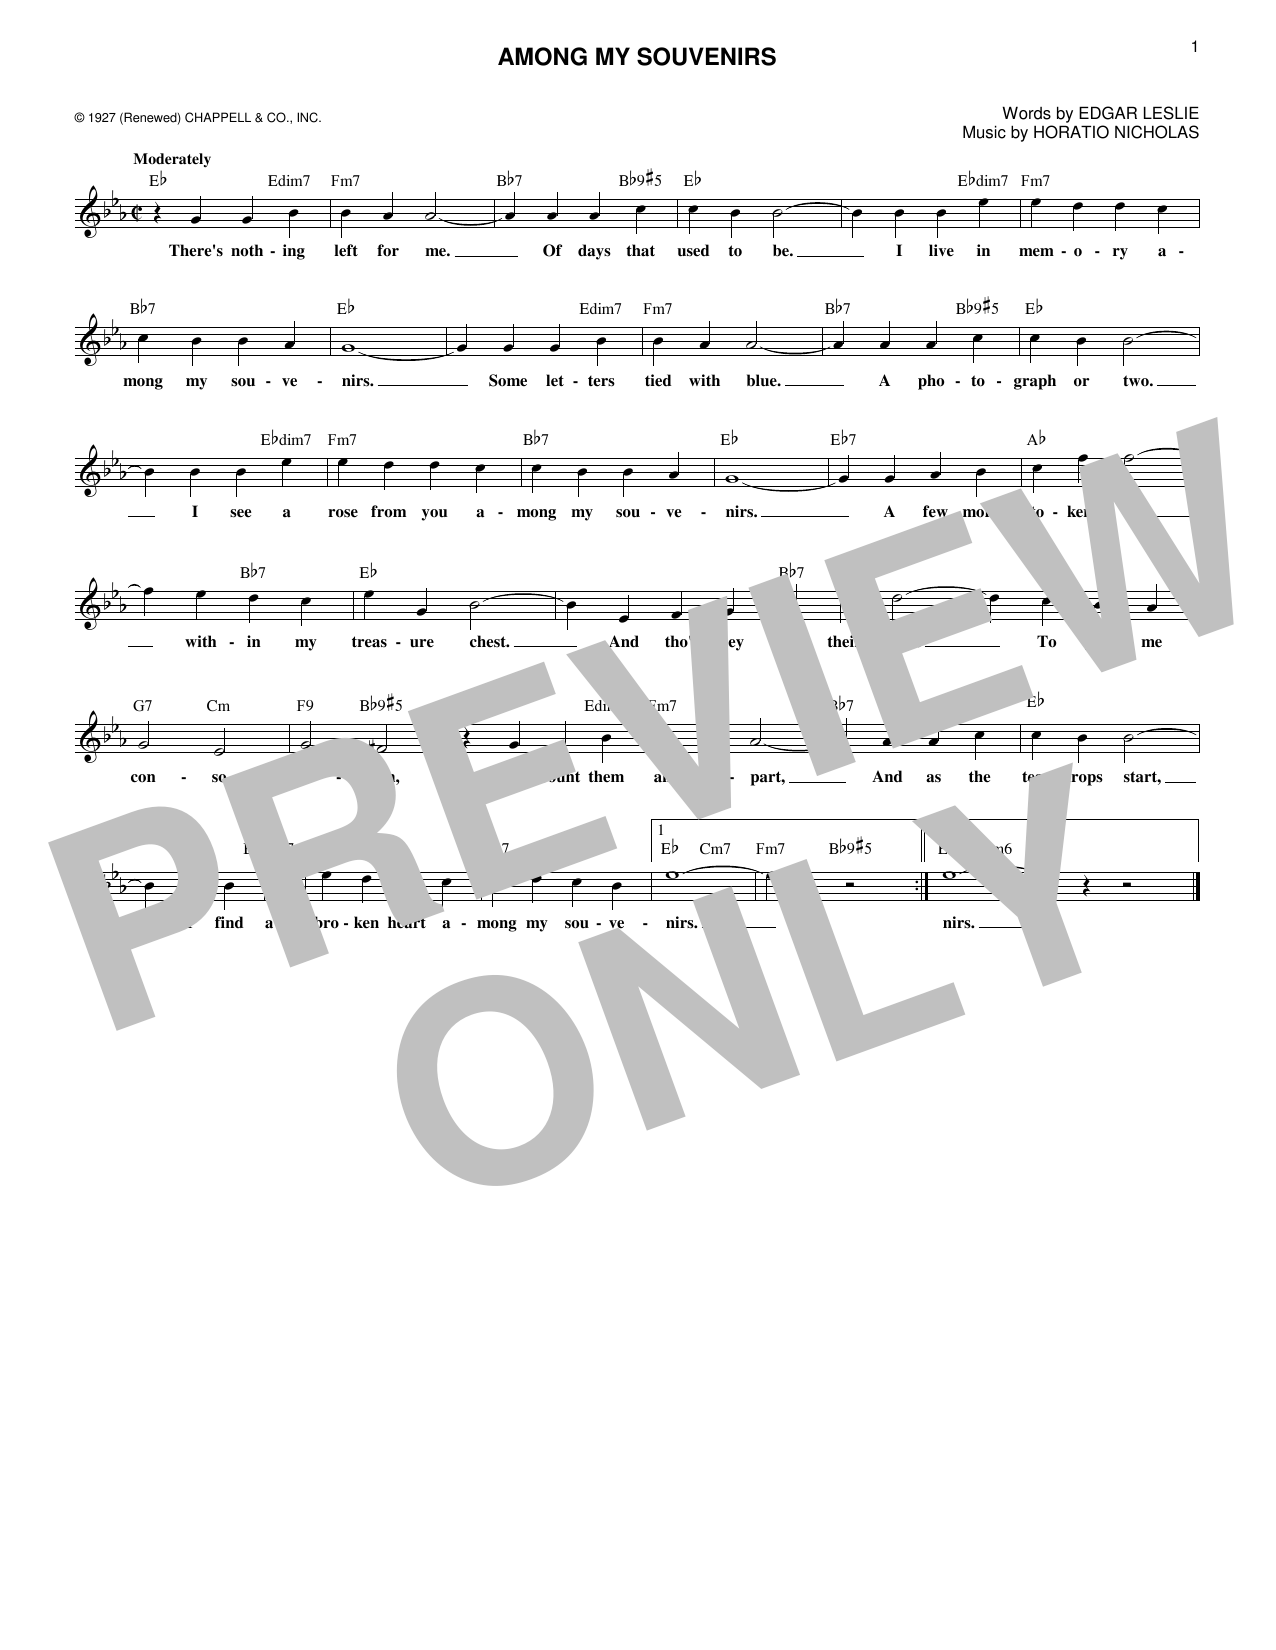 Marty Robbins Among My Souvenirs sheet music notes and chords. Download Printable PDF.